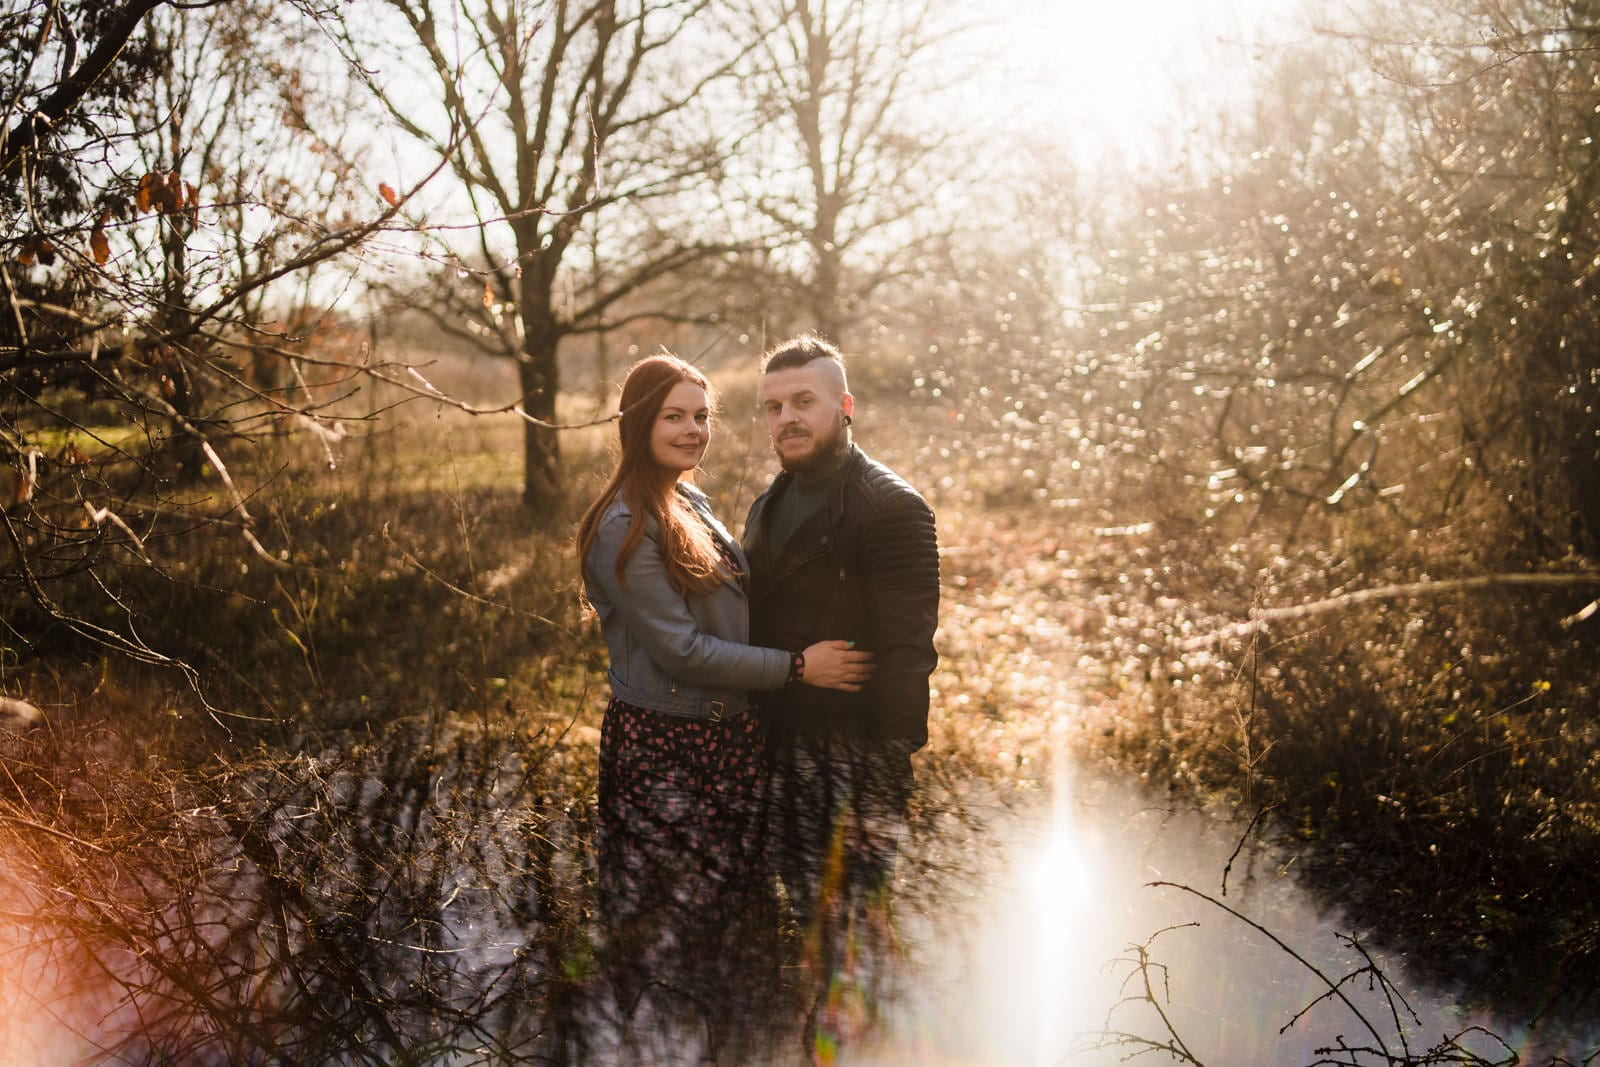 Engagment shoot, photo using prism to reflect couple